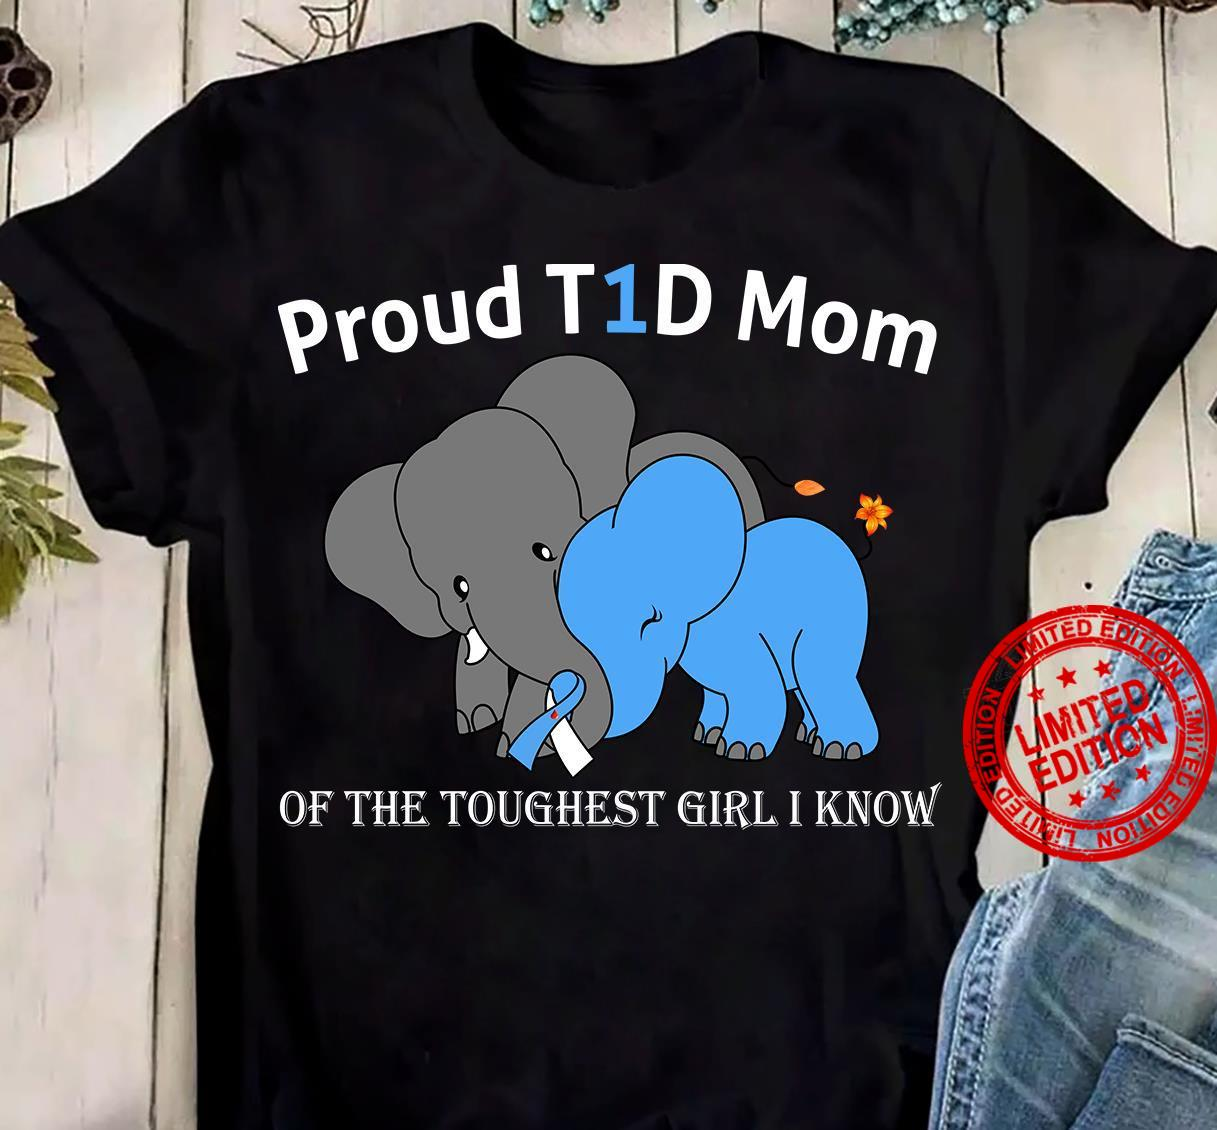 Proud T1D Mom Of The Toughest Girl I Know Shirt